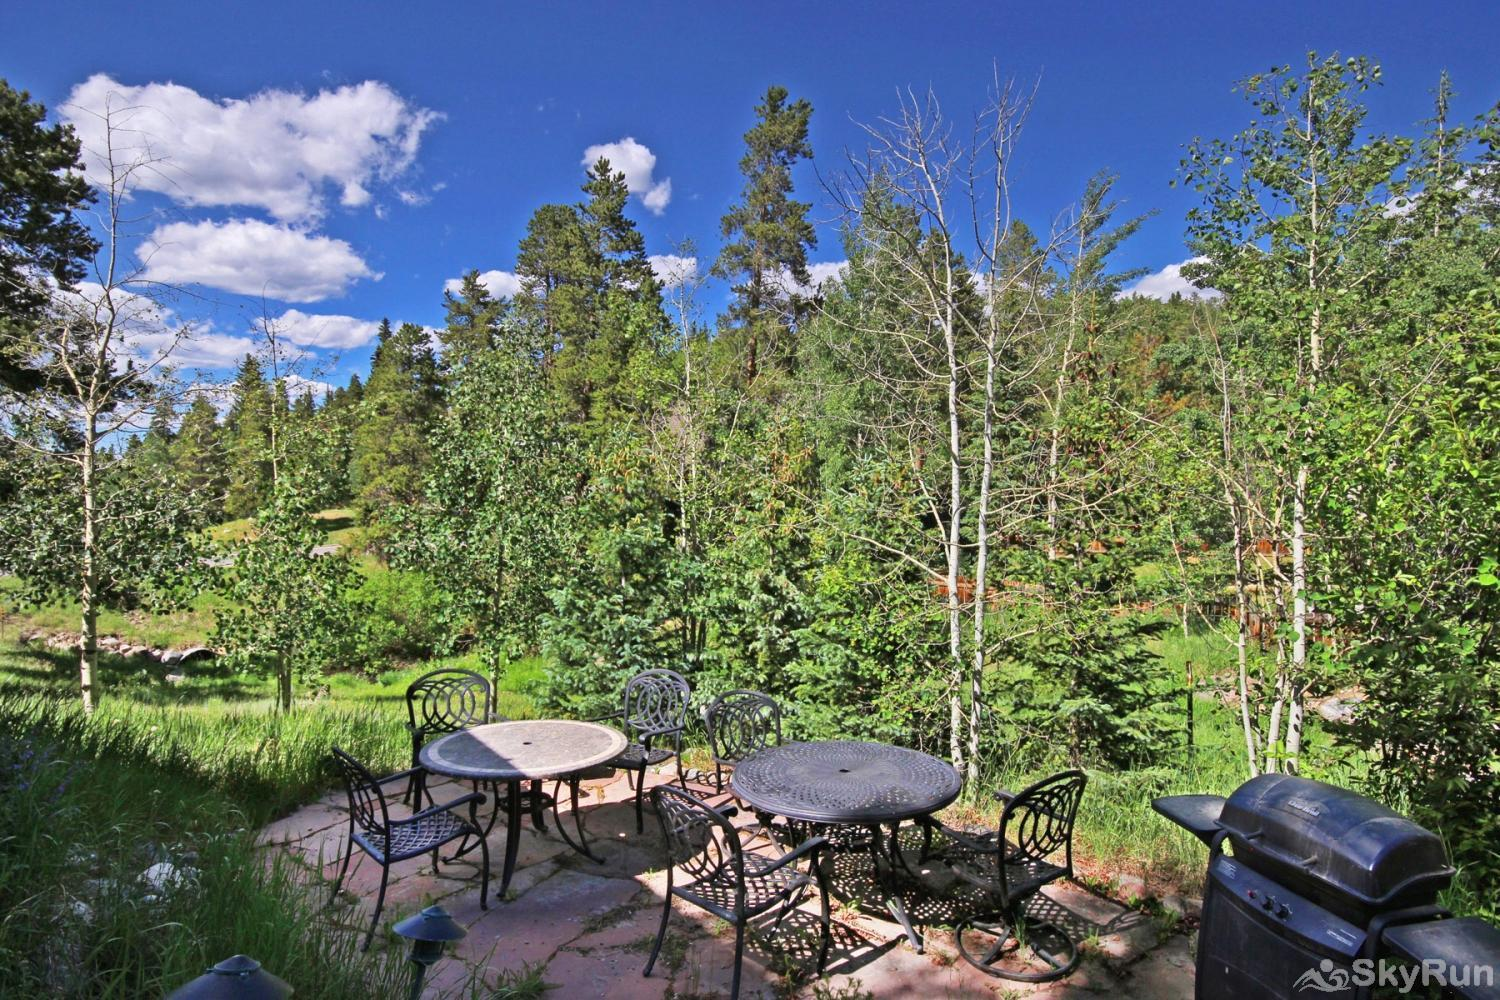 Bear Pine Chalet Private patio with seating to relax and socialize